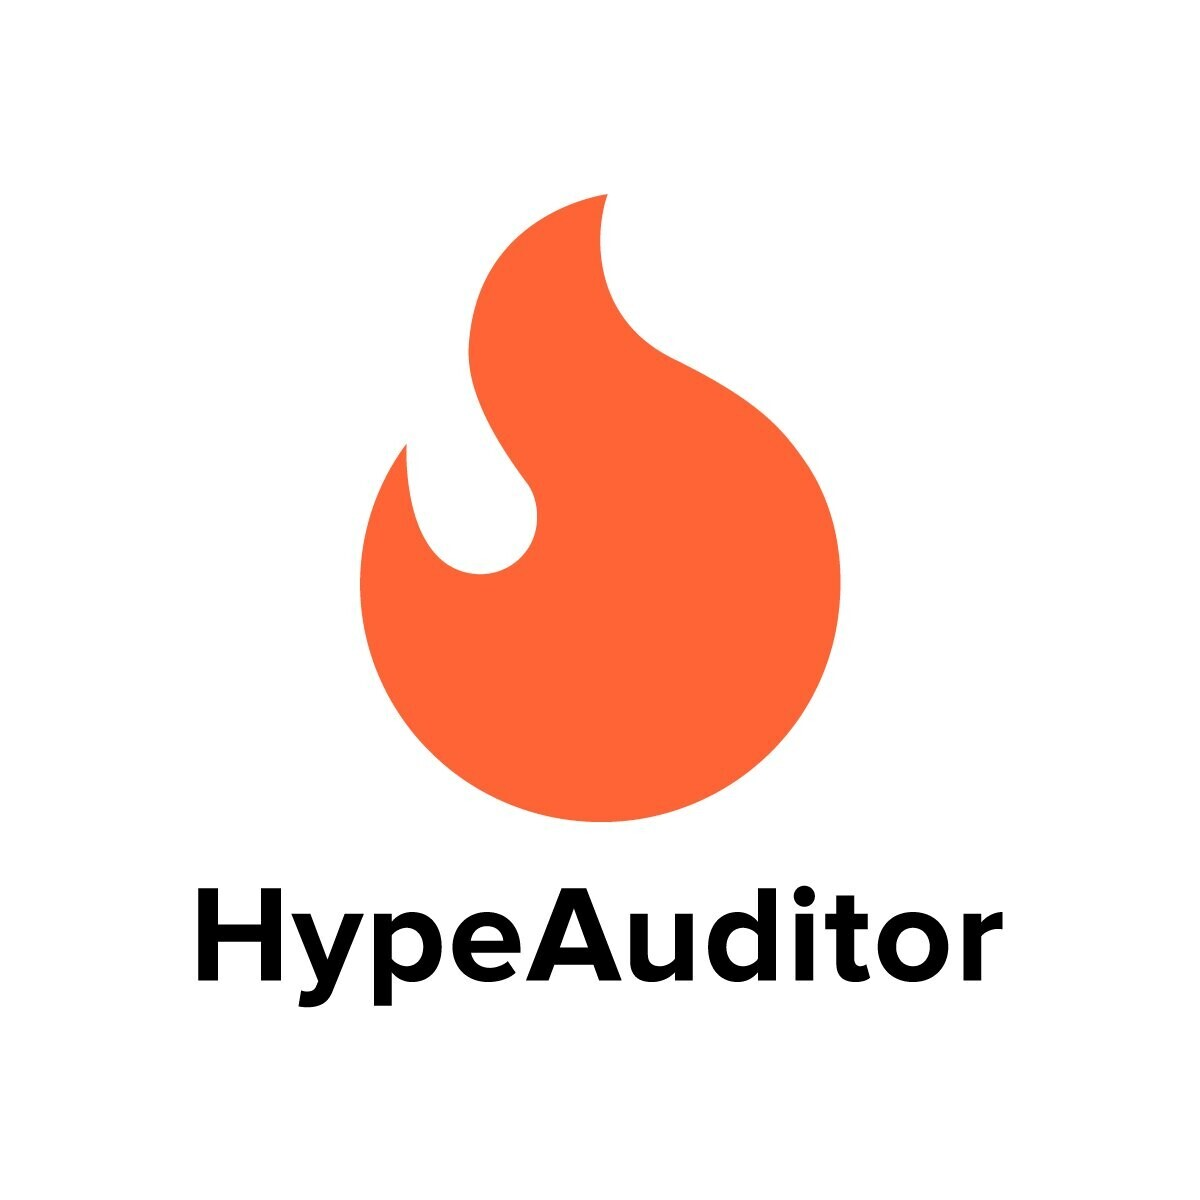 HypeAuditor